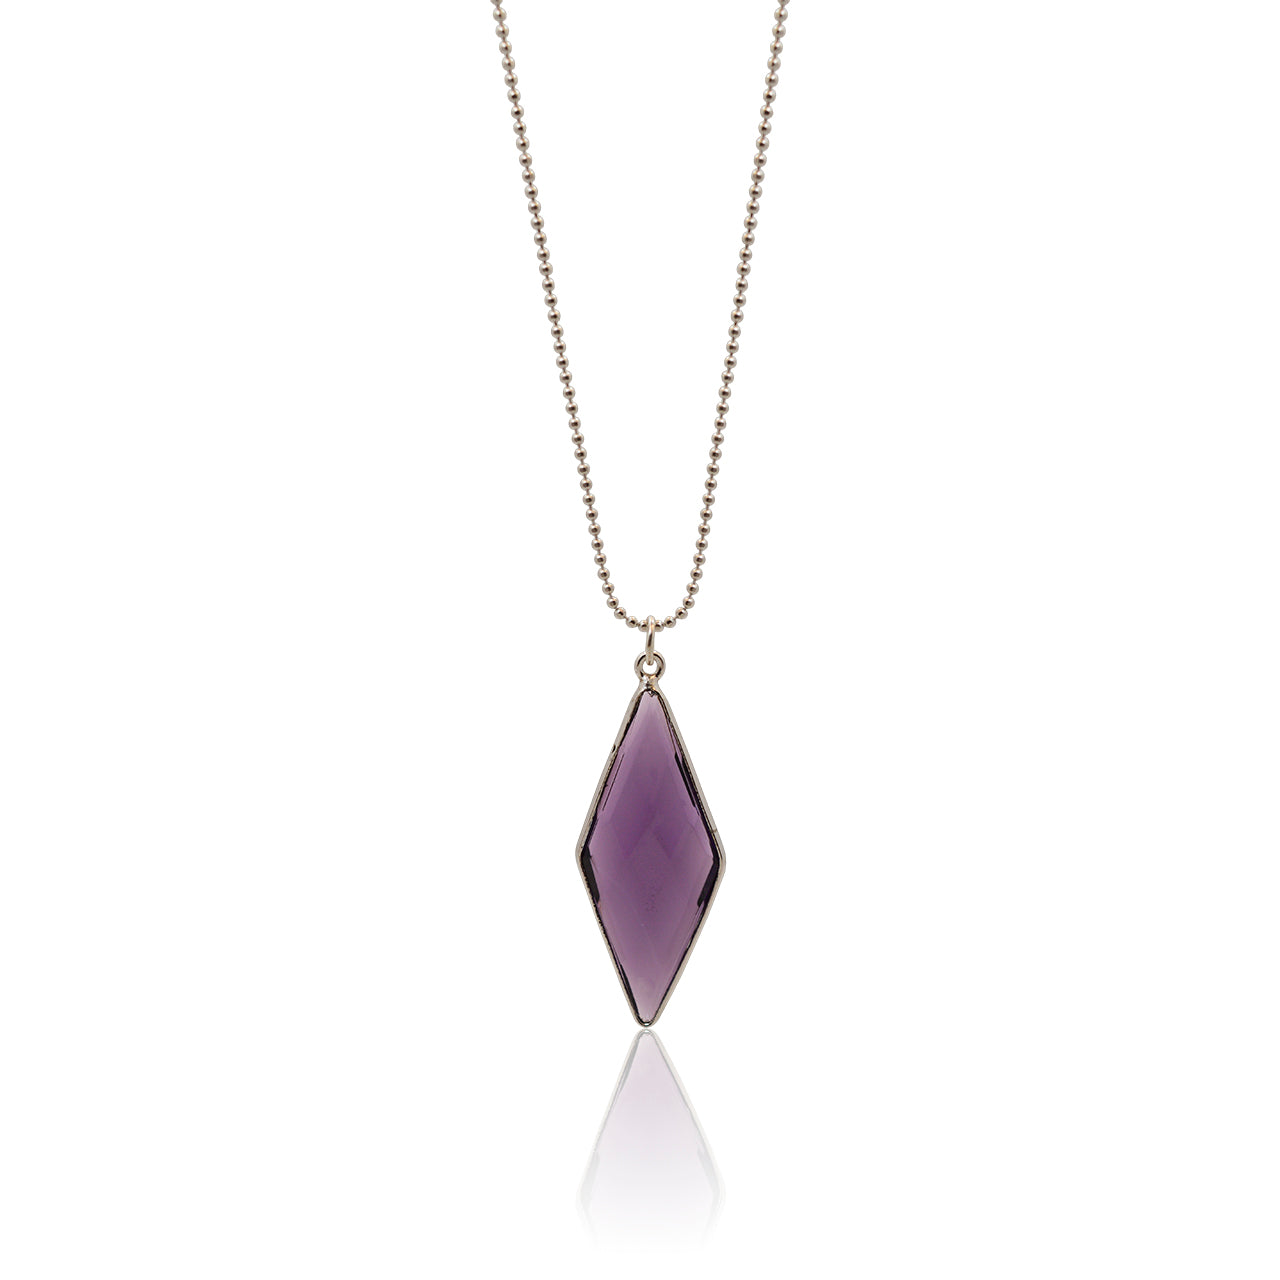 Amethyst Spike Necklace - Hydro Quartz